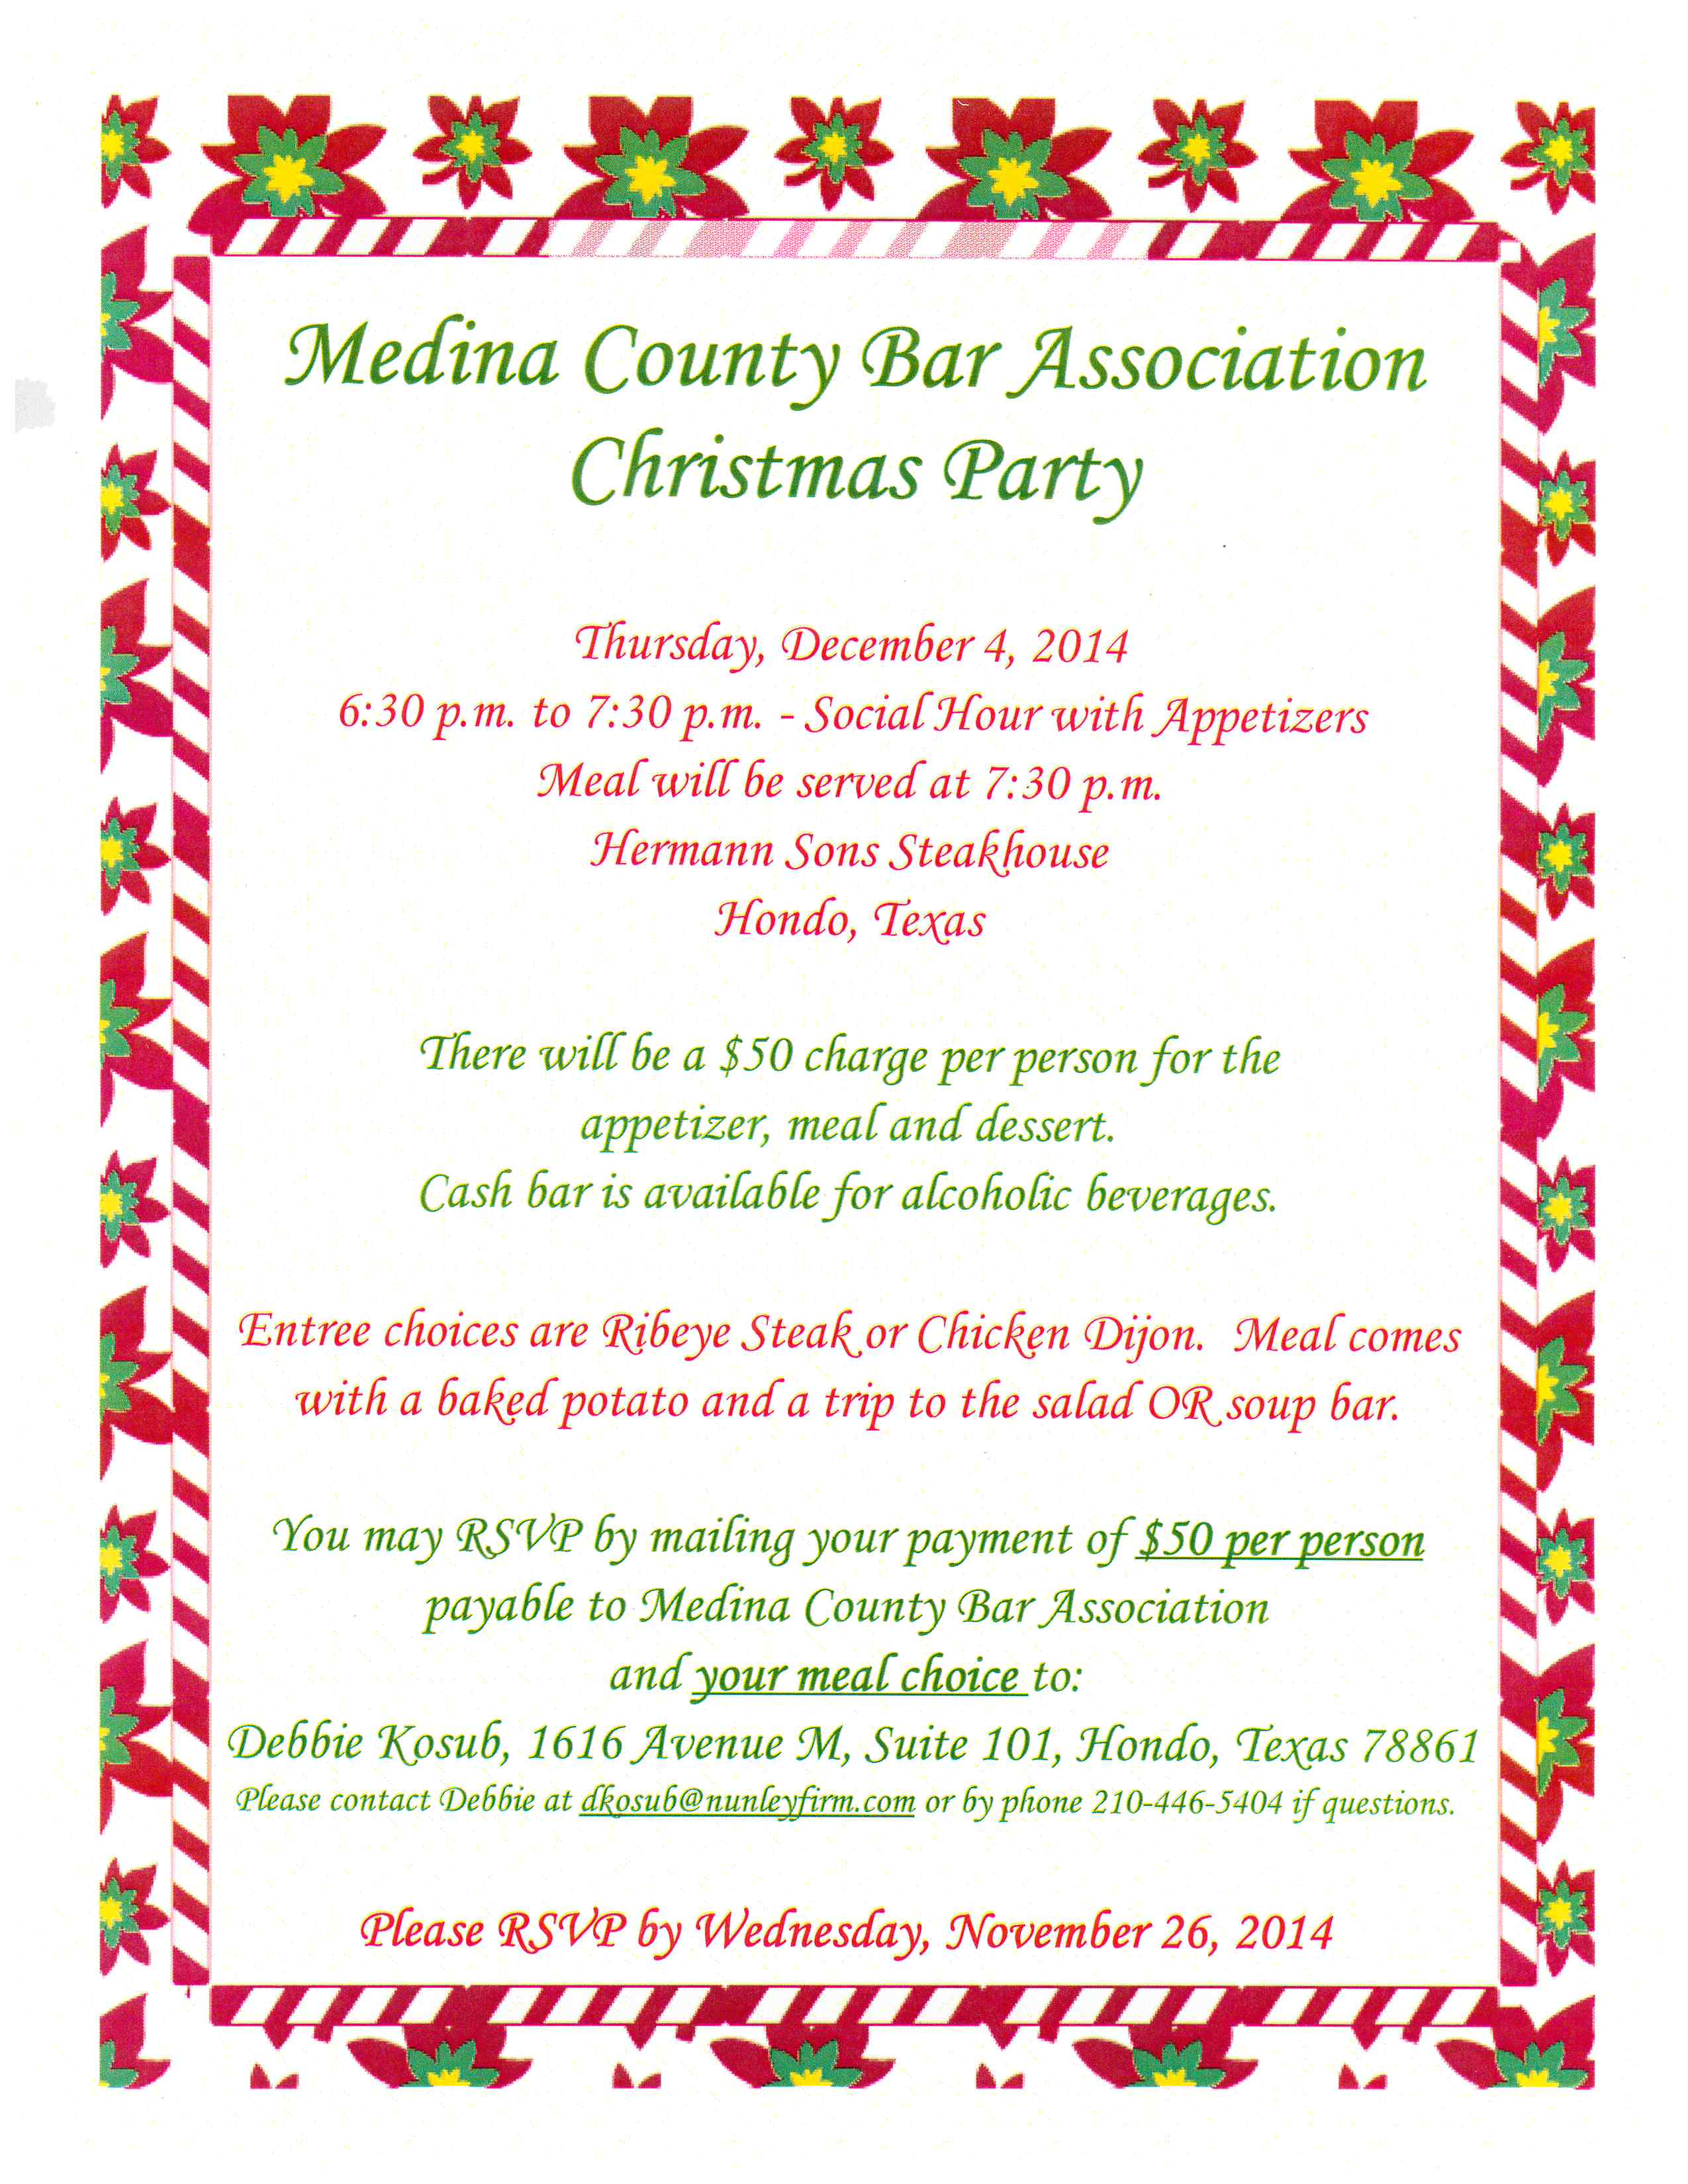 Party rsvp reminder template cmm operator sample resume 4 sample of a reminder sample of bill of lading document invoice mcba cristmas party 4 stopboris Images